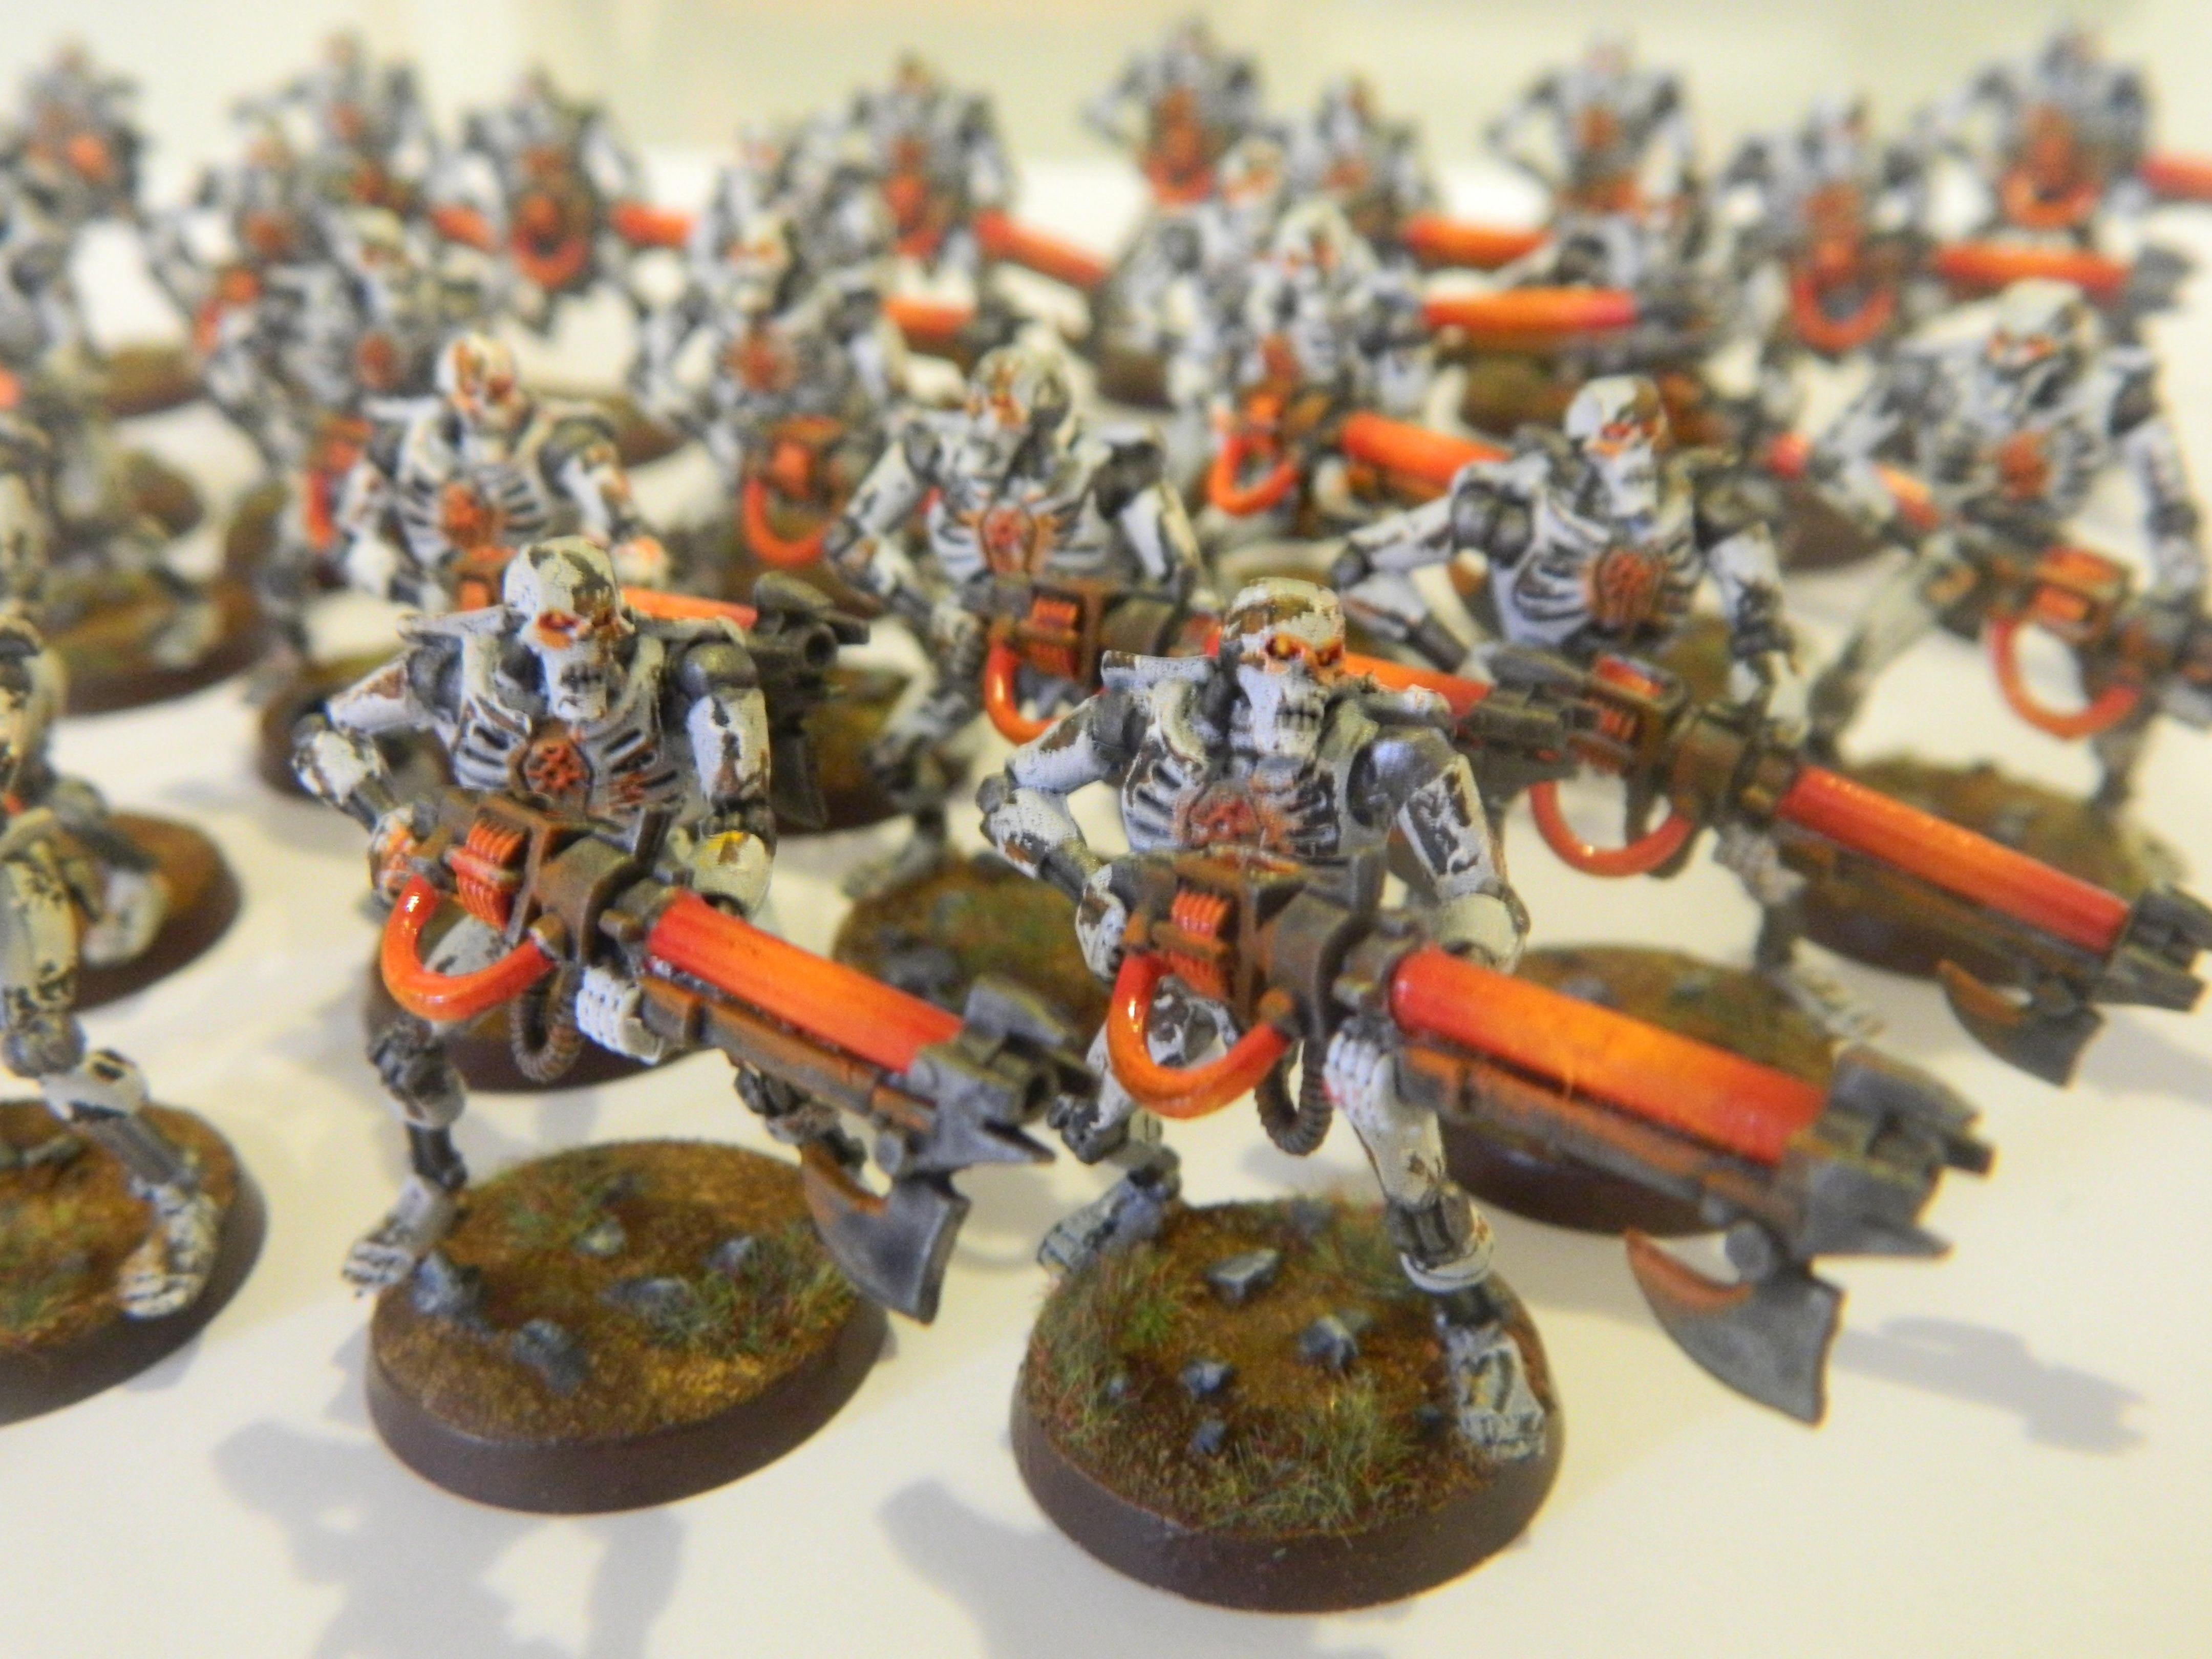 Airforce, Deathmarks, Doomscythe, Lord, Necrons, Nightscythe, Orange, Overlord, Red, Rust, Scarabs, Scythe, Tomb Blade, Warriors, White